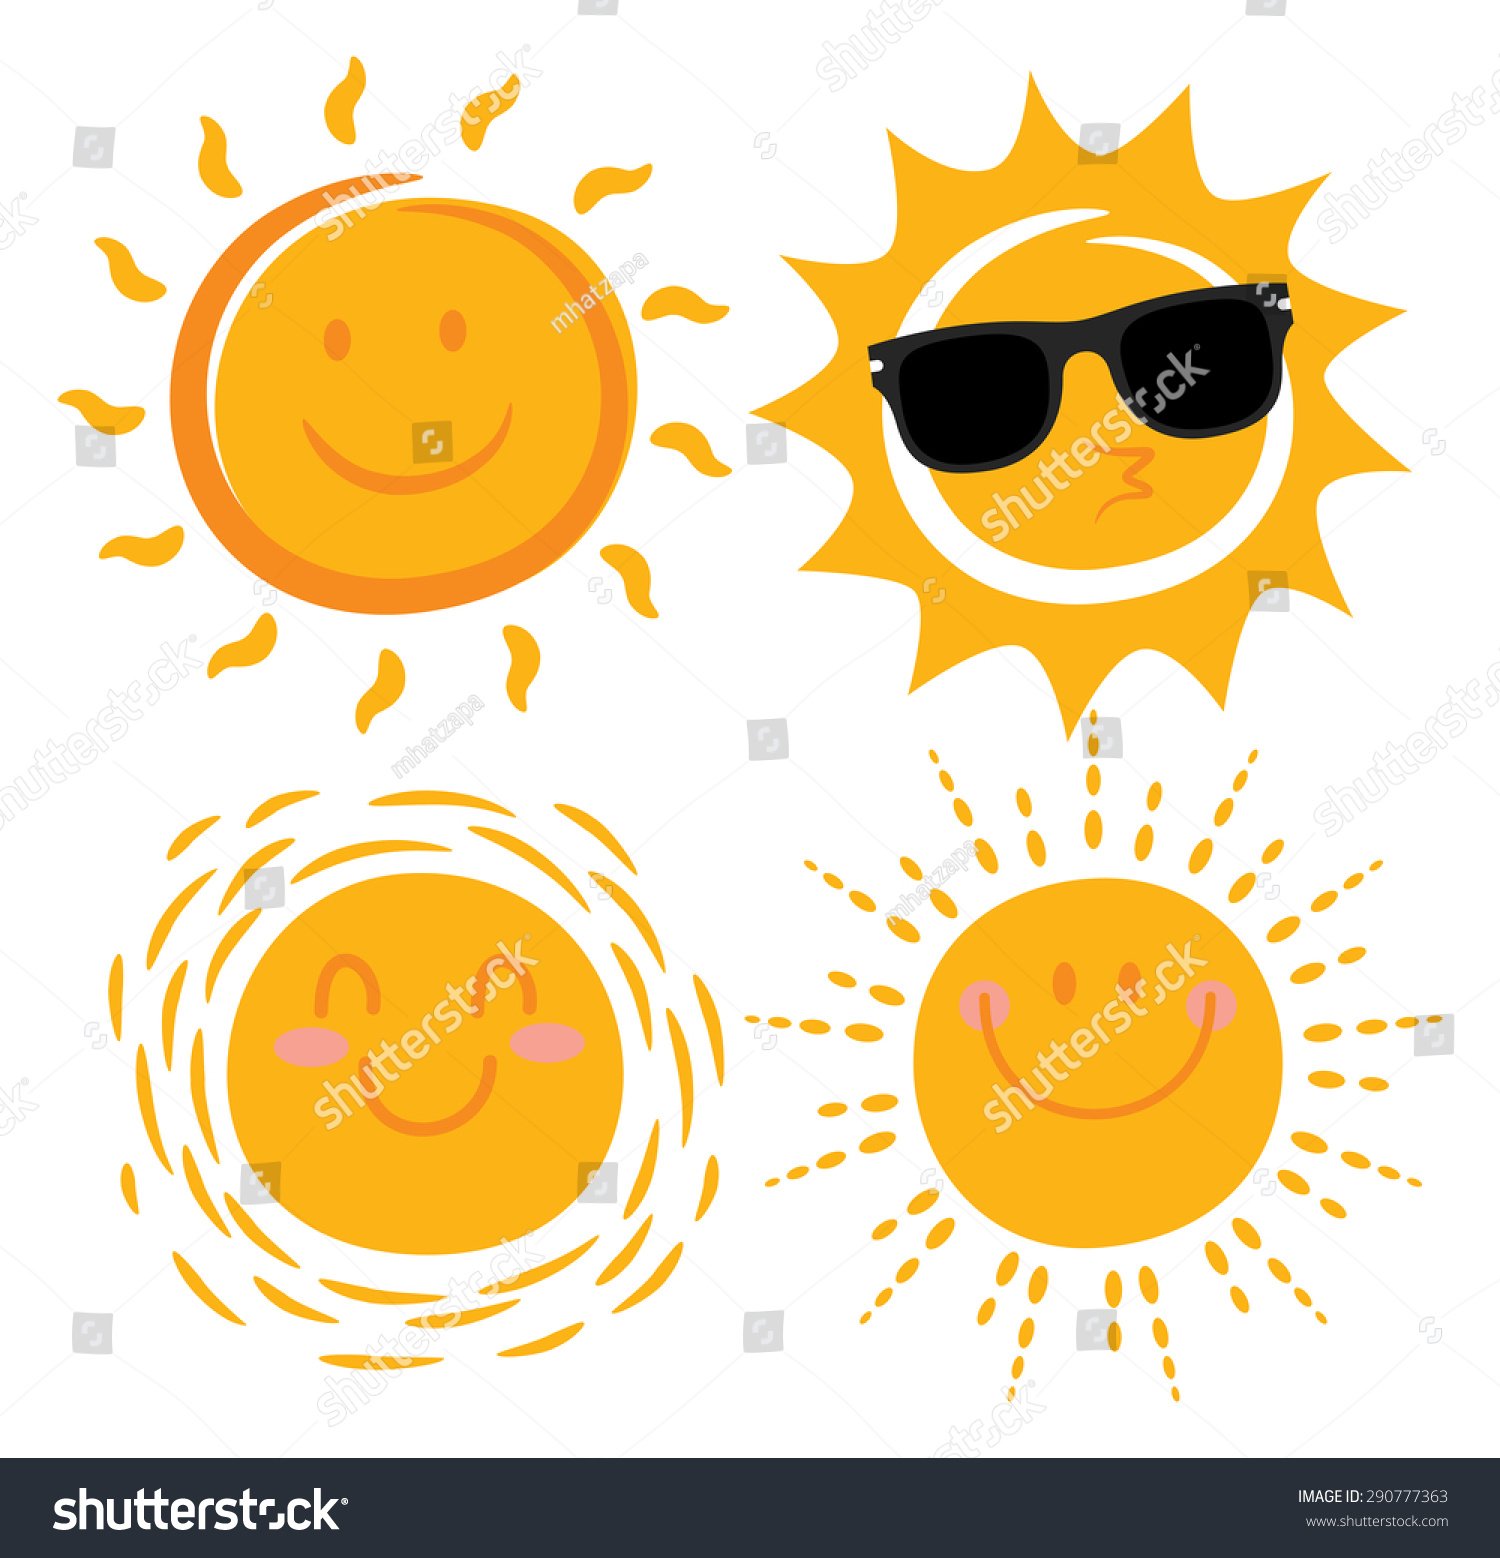 Smiling sun images - Various Smiling Sun Cartoon